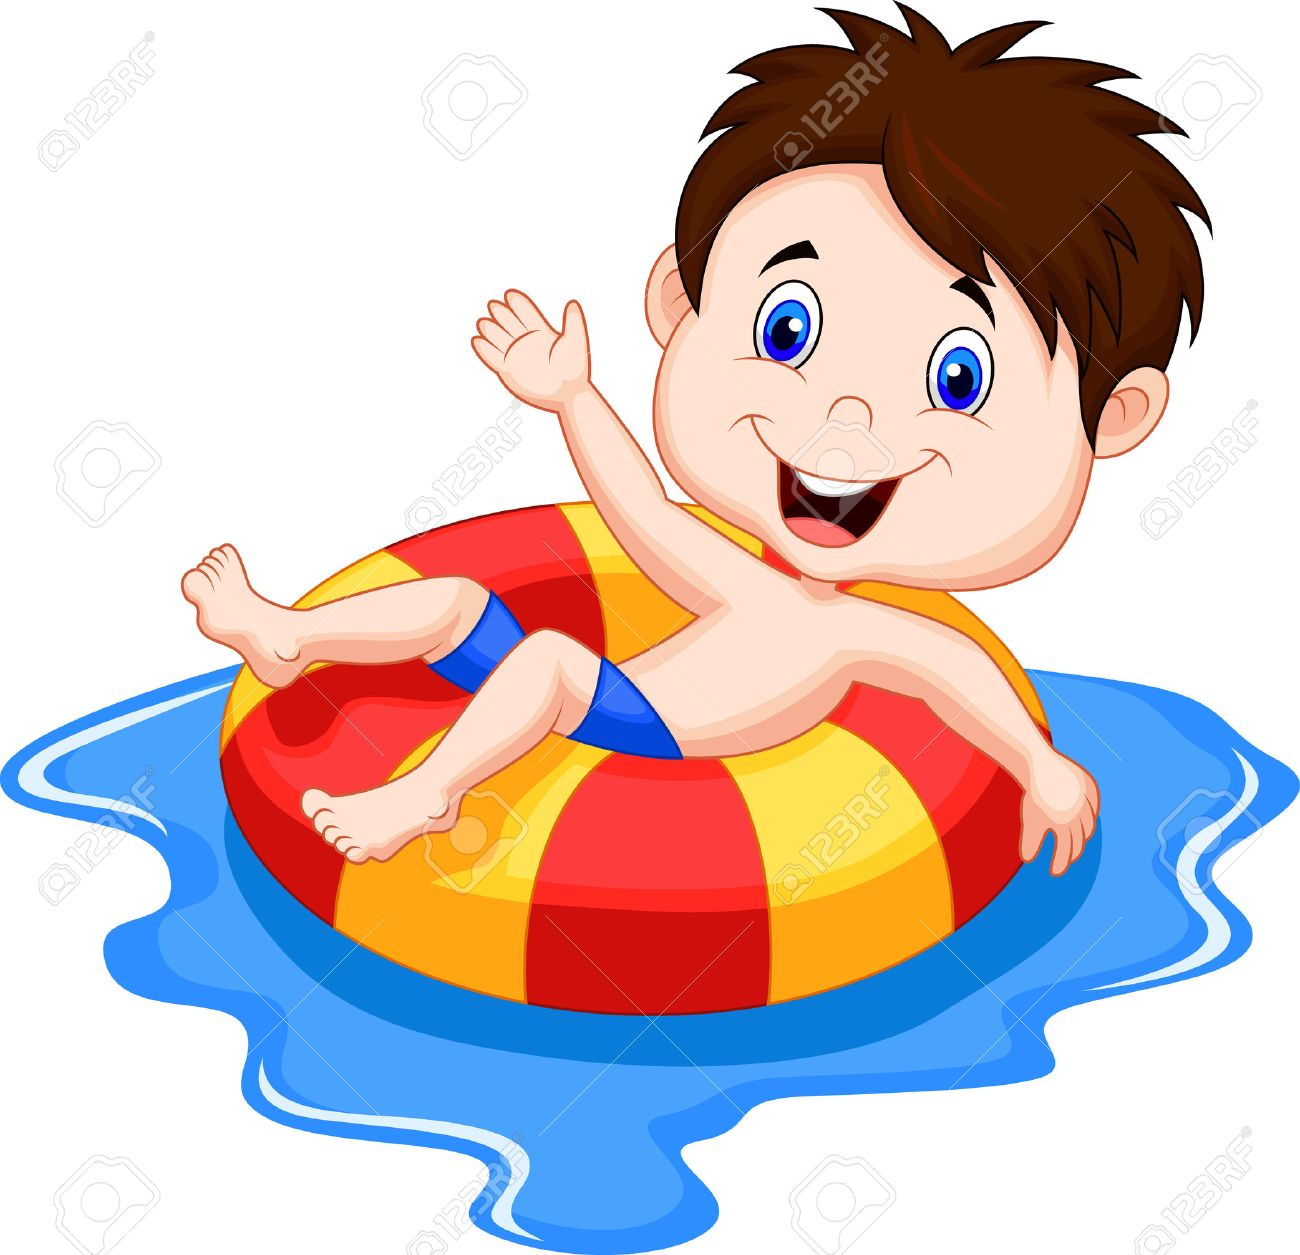 Cartoon Boy floating on an inflatable circle in the pool Stock Vector - 23001380